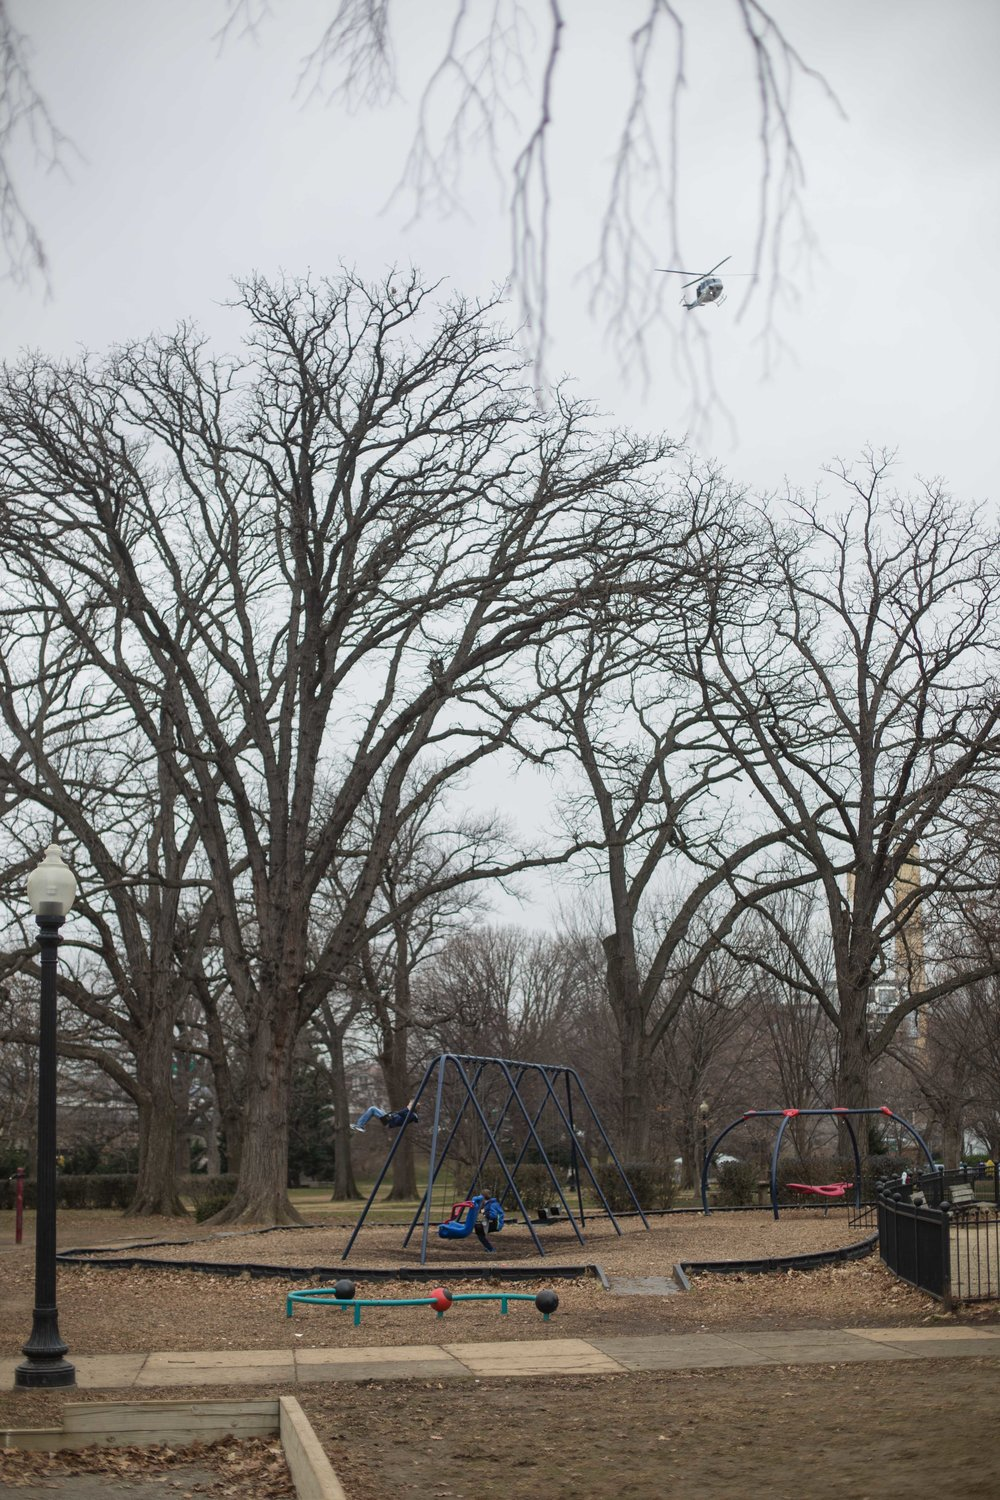 A child swings with his friend while a helicopter patrols overhead - January 20th, 2017